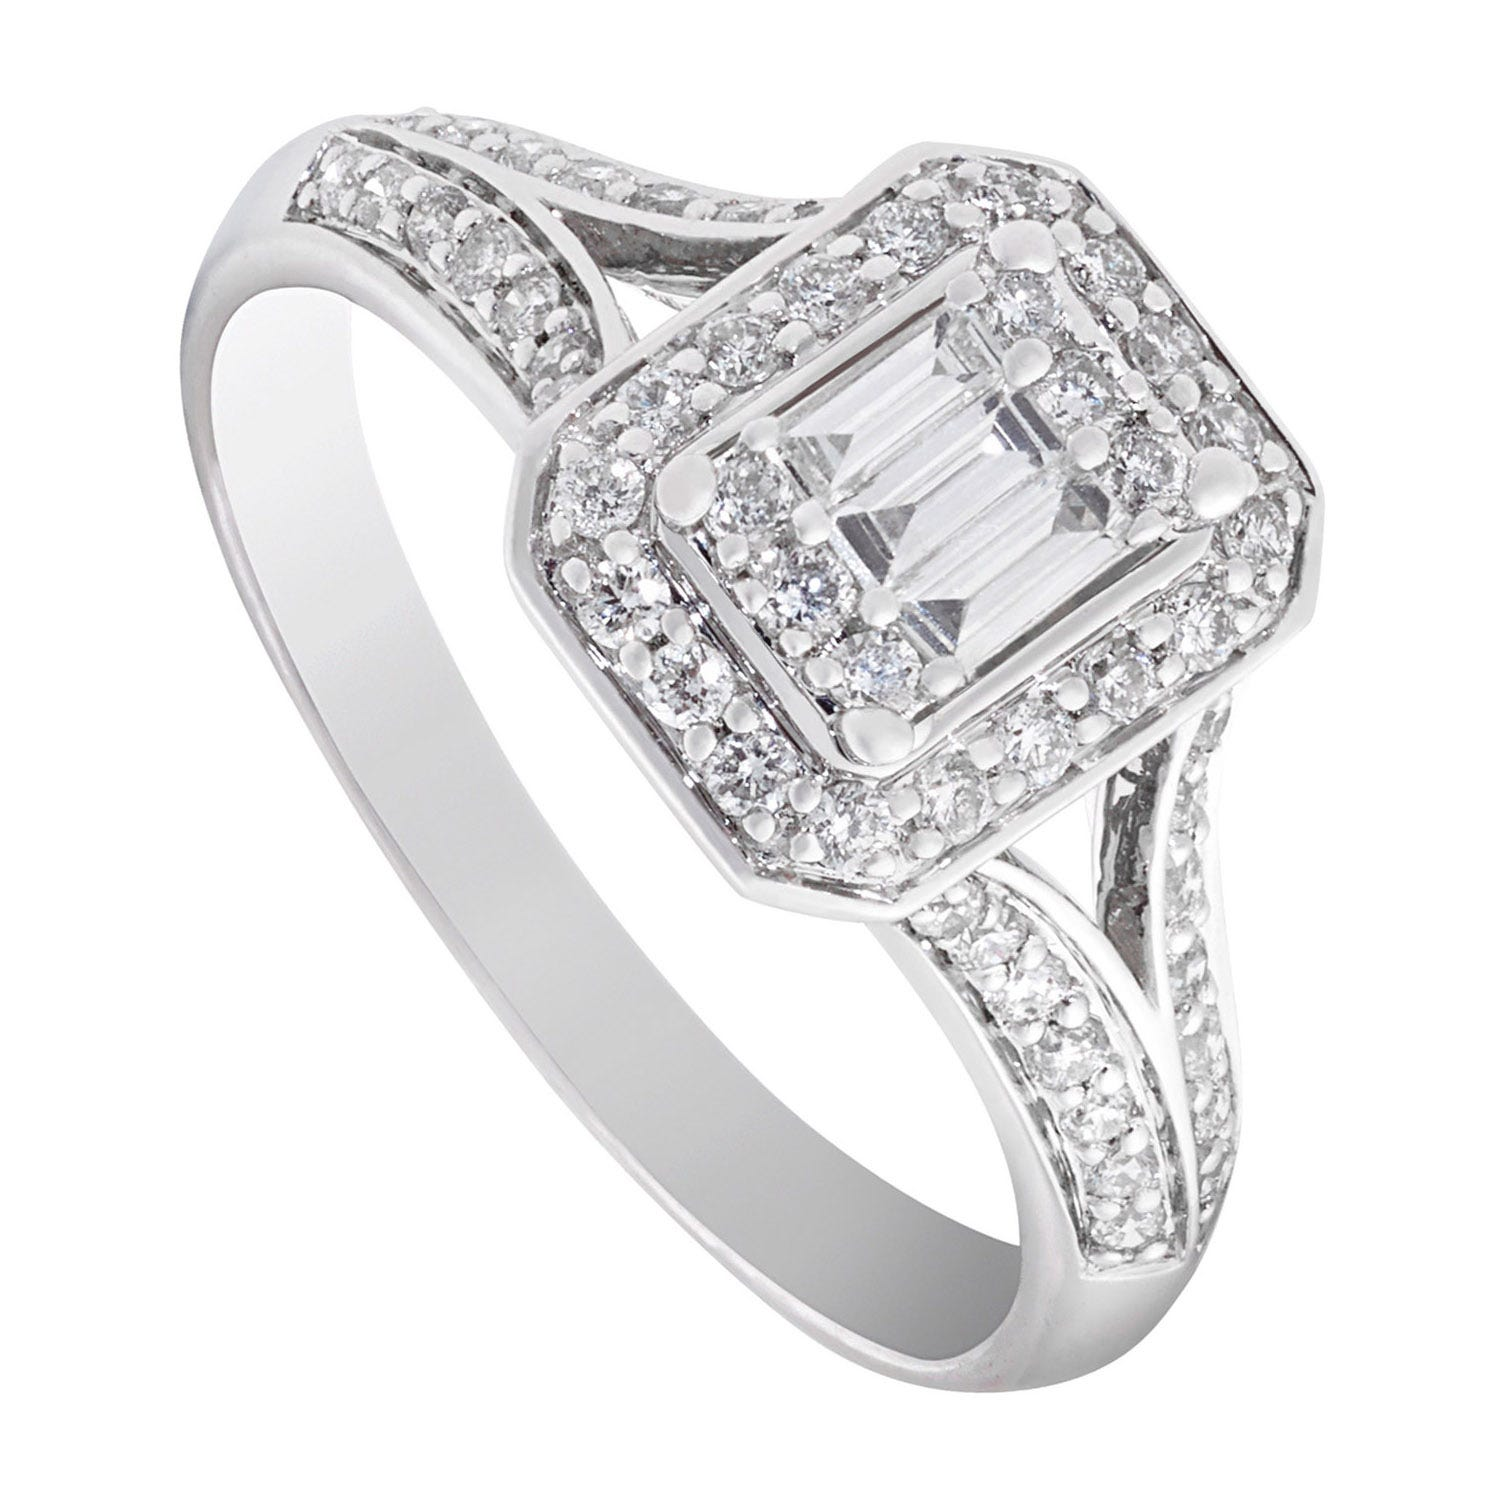 9ct white gold 0.50 carat diamond split shoulder ring